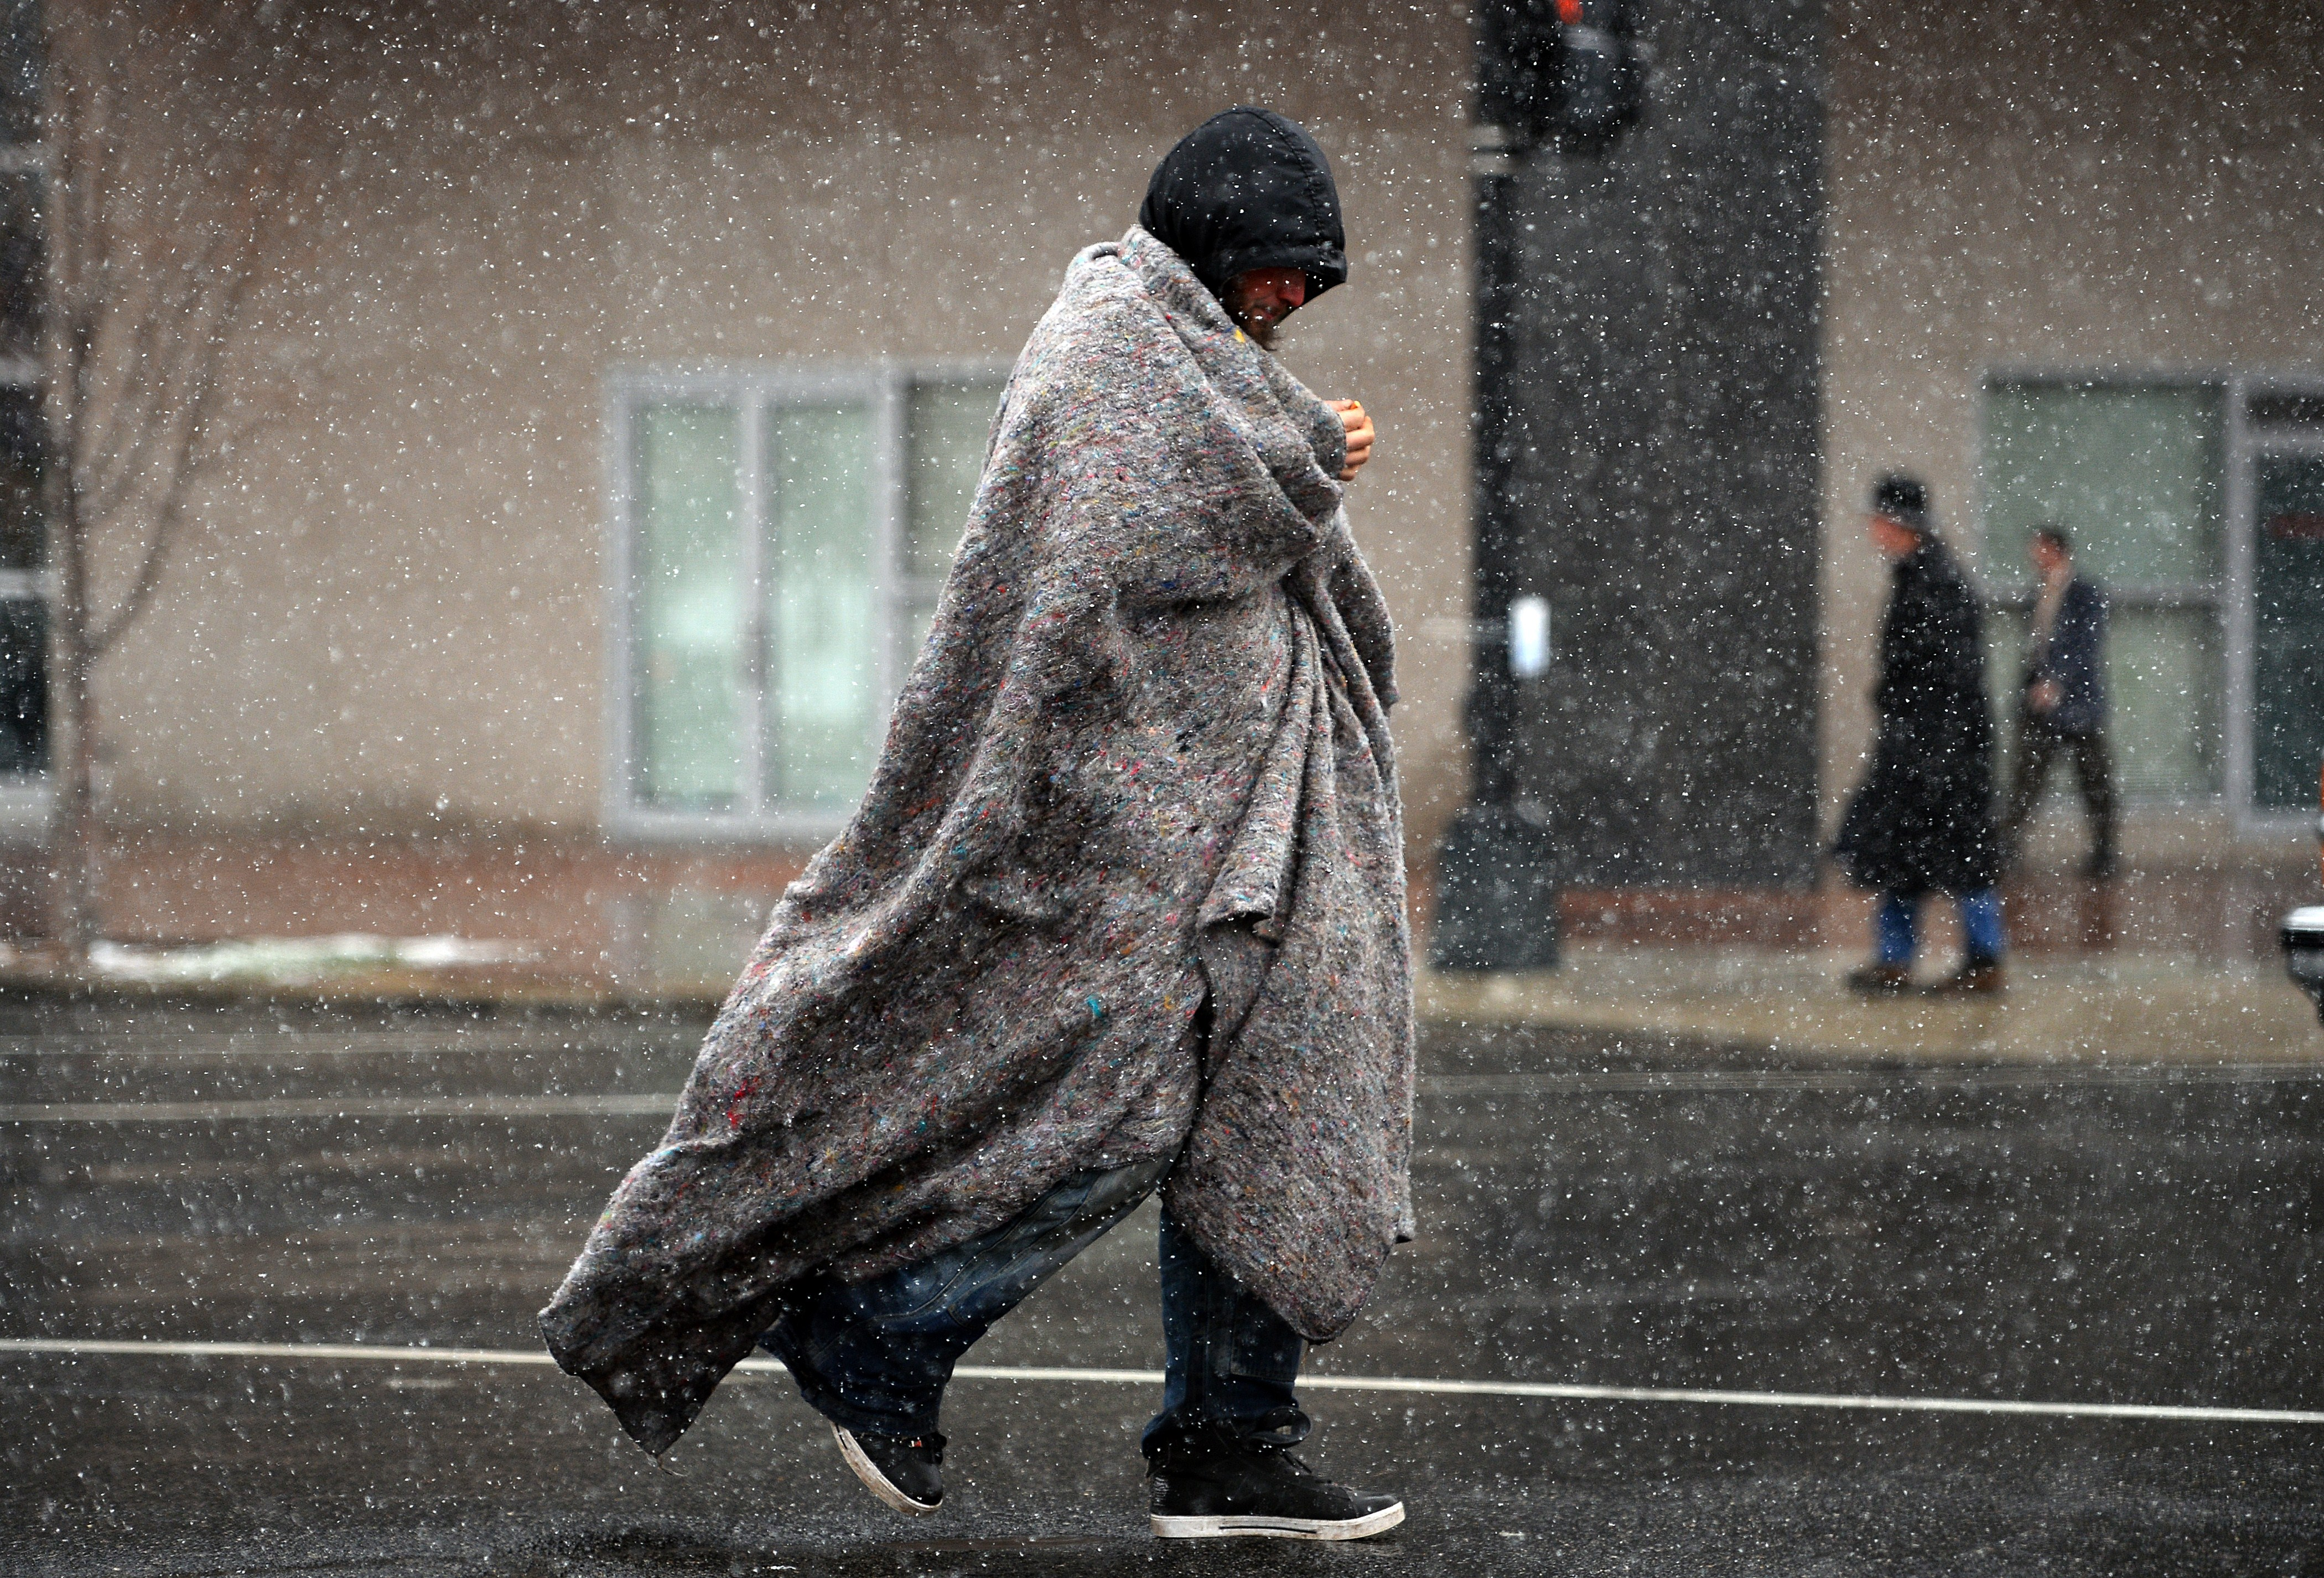 A man covers himself as he crosses a street under a snowfall in Washington, D.C. on March 25, 2014.